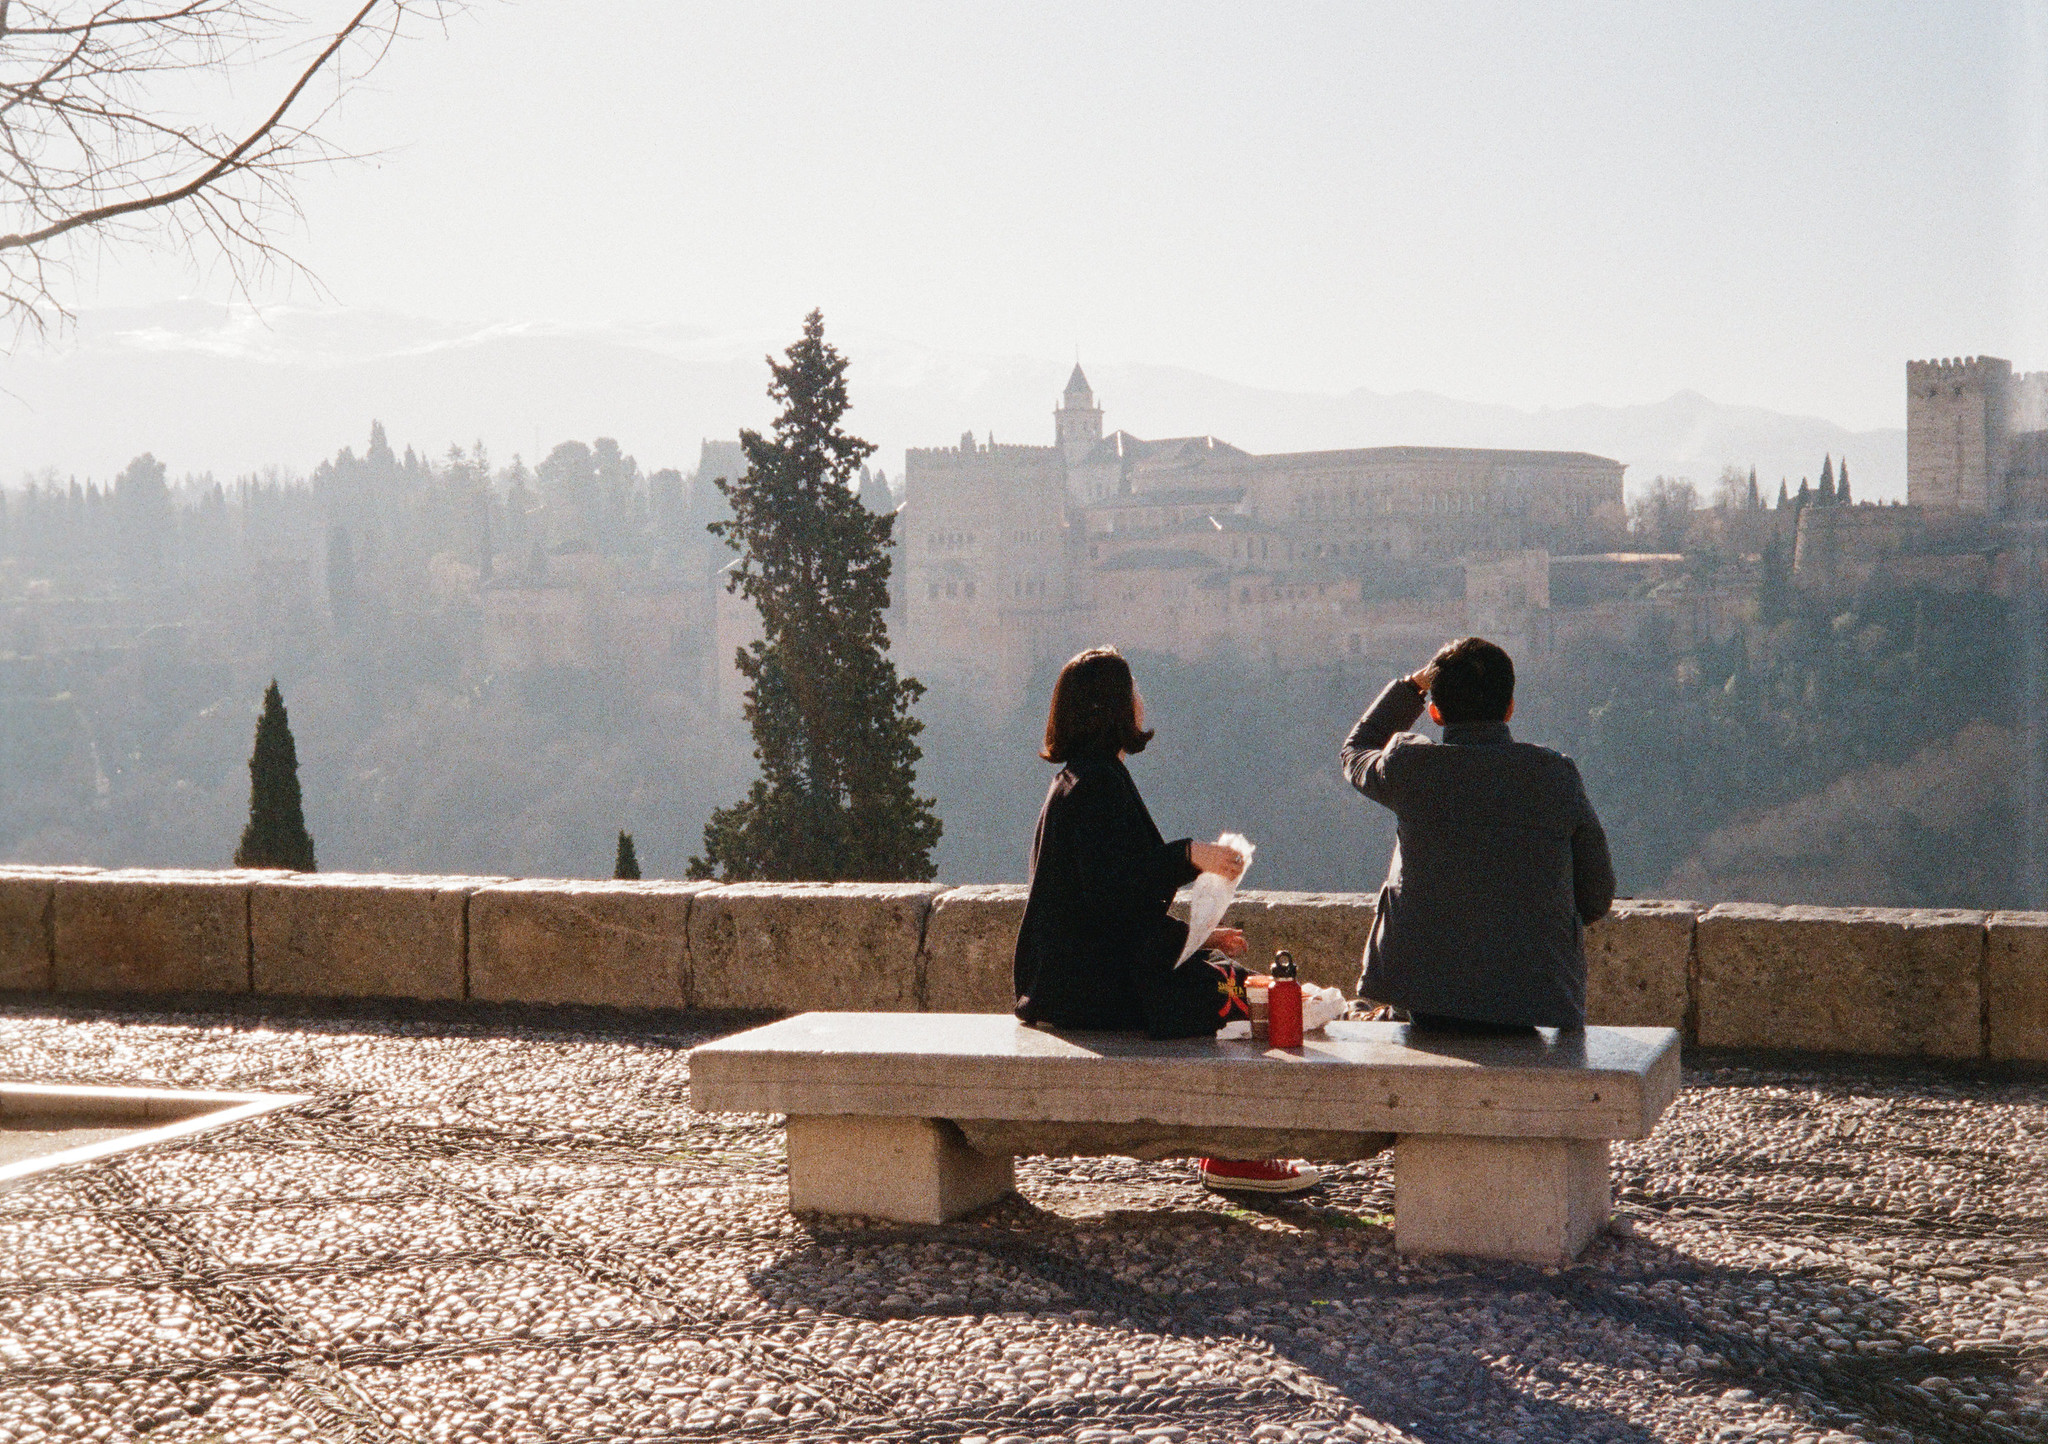 Overlooking The Alhambra